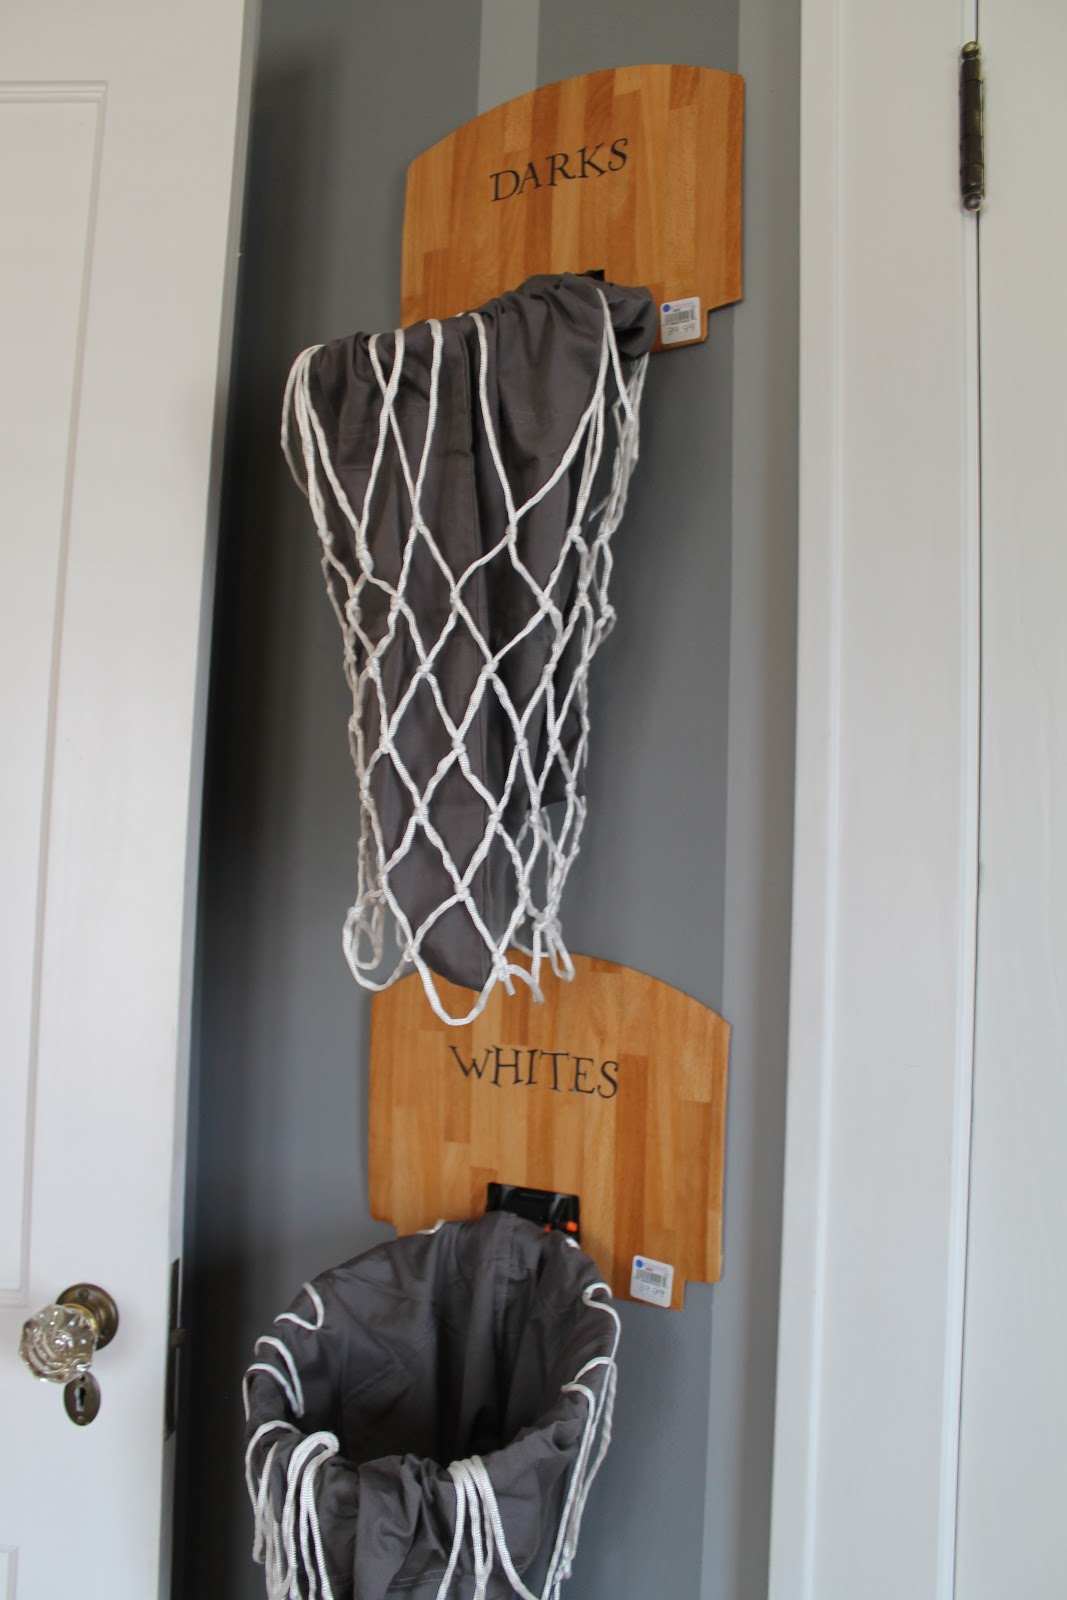 Boys basketball bedroom ideas - Hammers And High Heels Holiday 2012 Idea House Cozy Up To Alpine Chic Decor Hammers